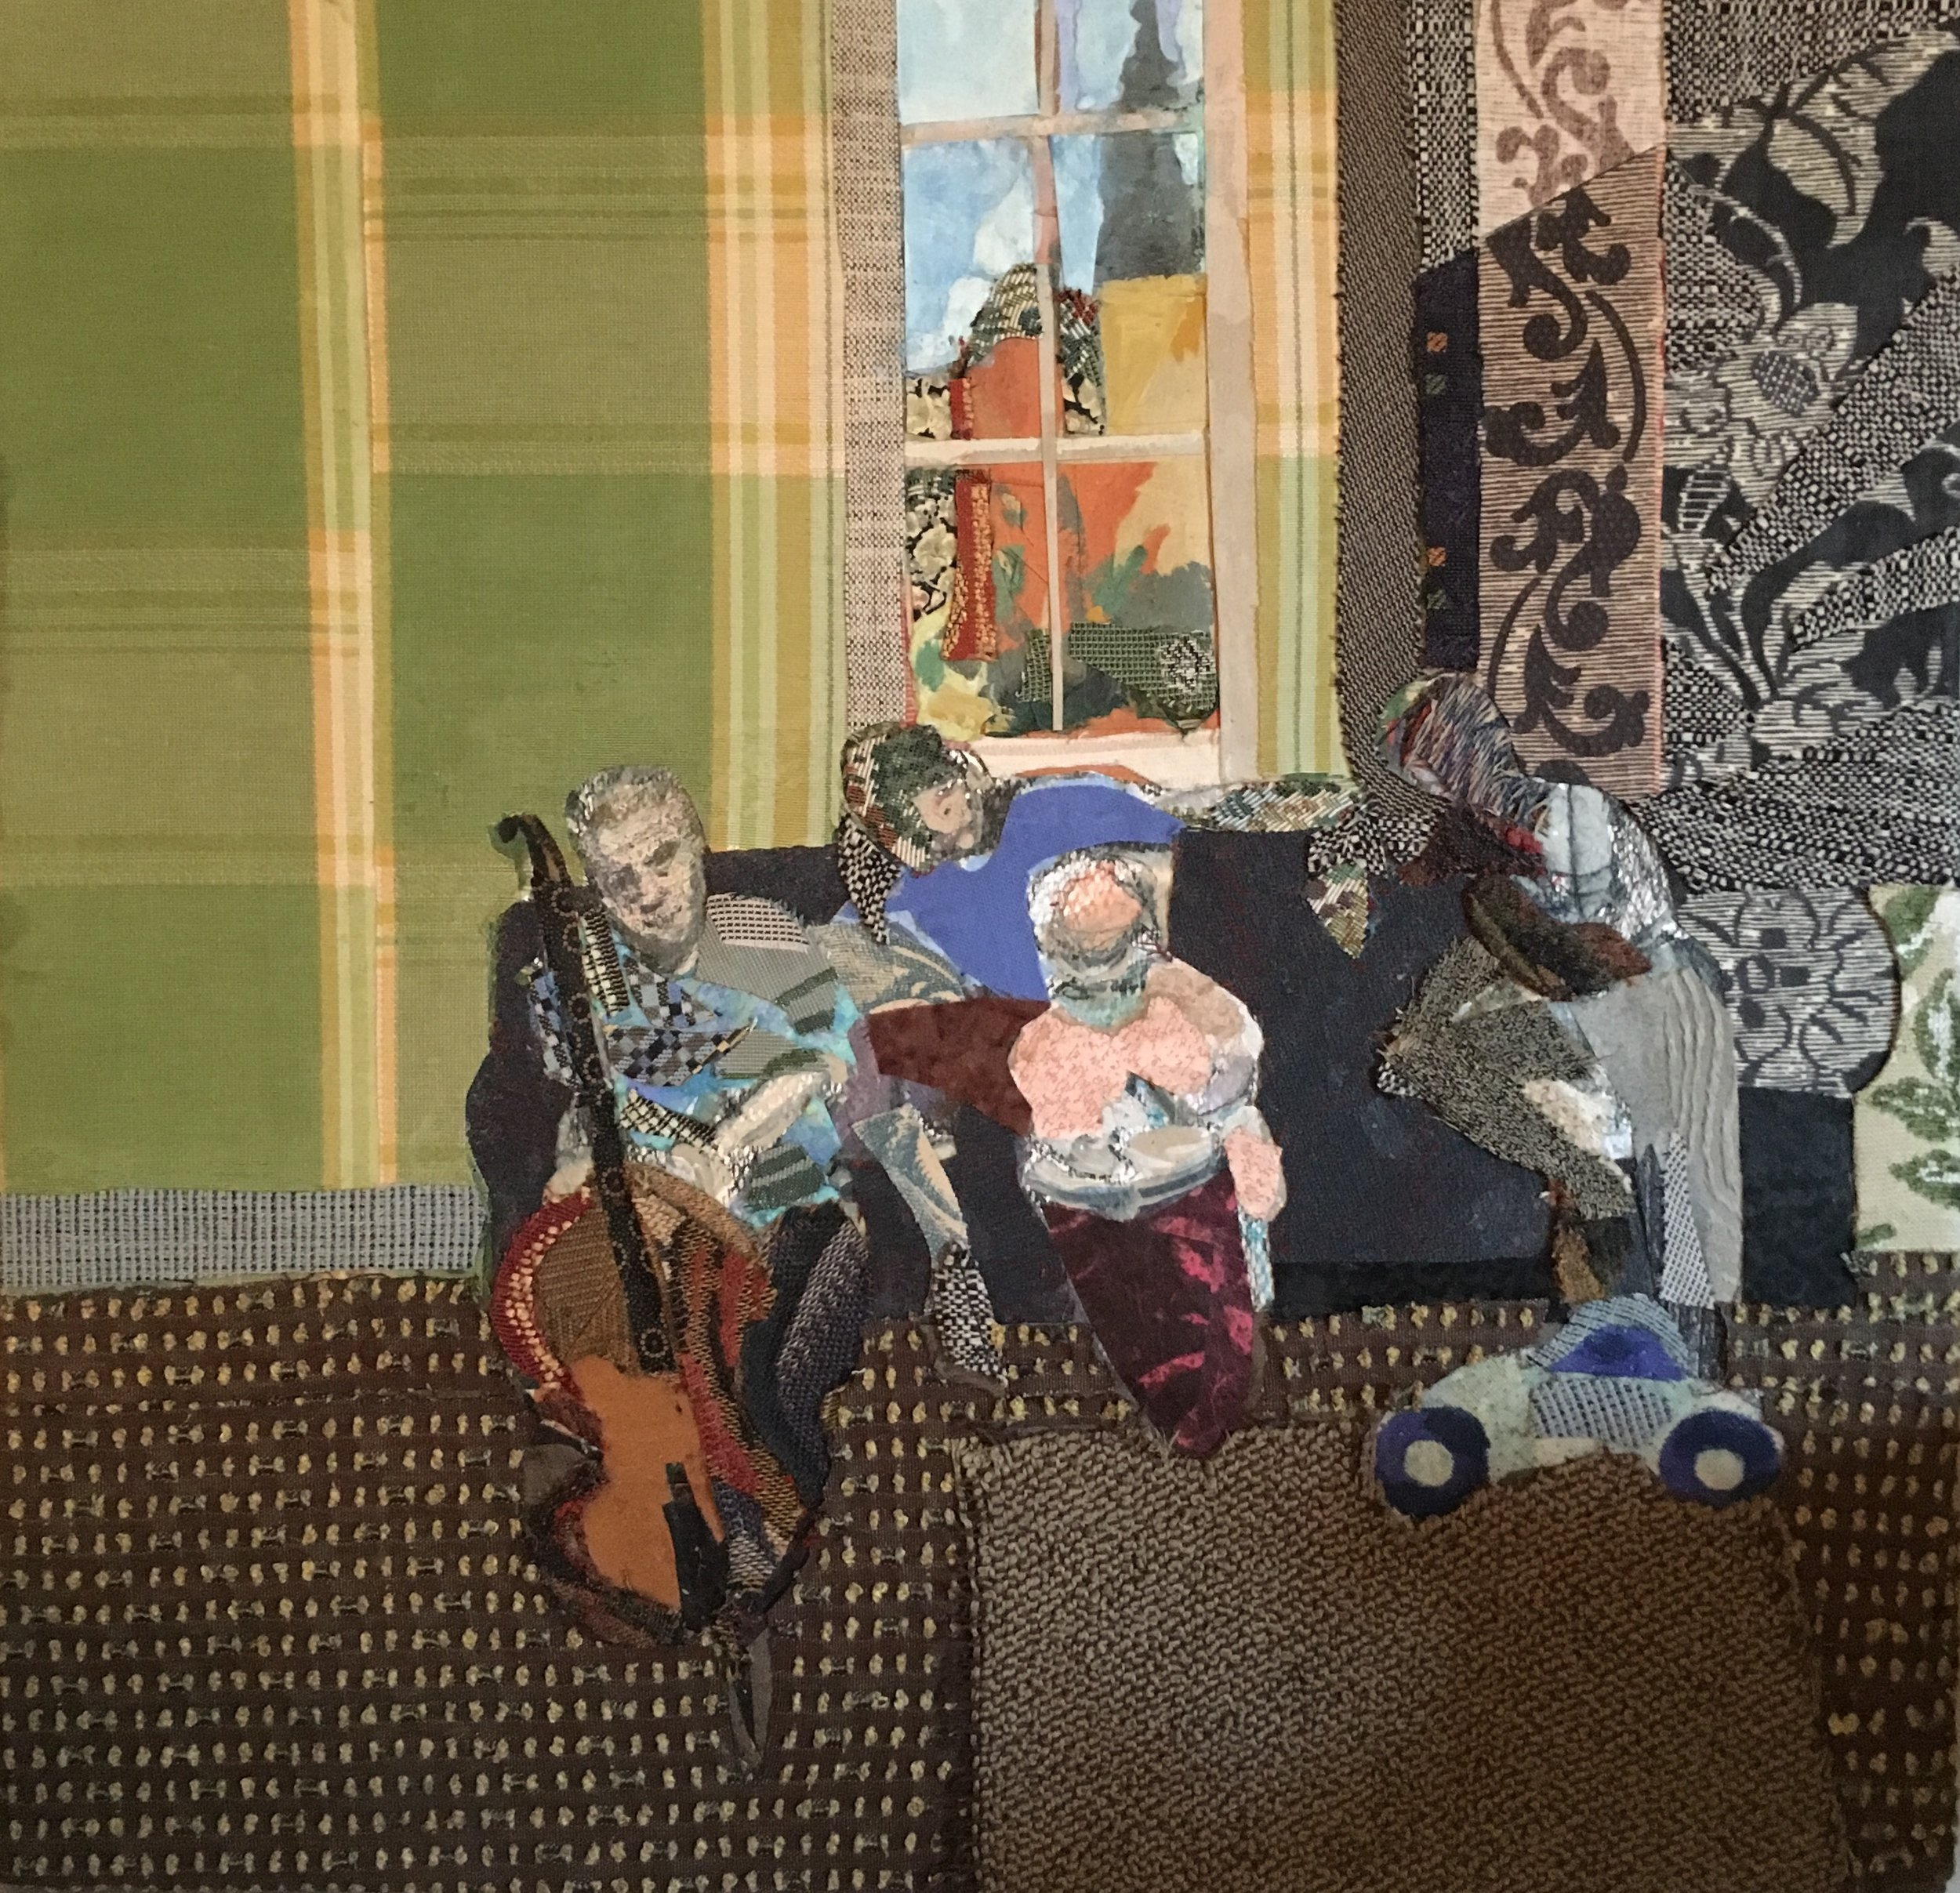 Homage to Vuillard (Family Group) , 2016, mixed media on canvas, 19 x 19.5 x 2.5 inches